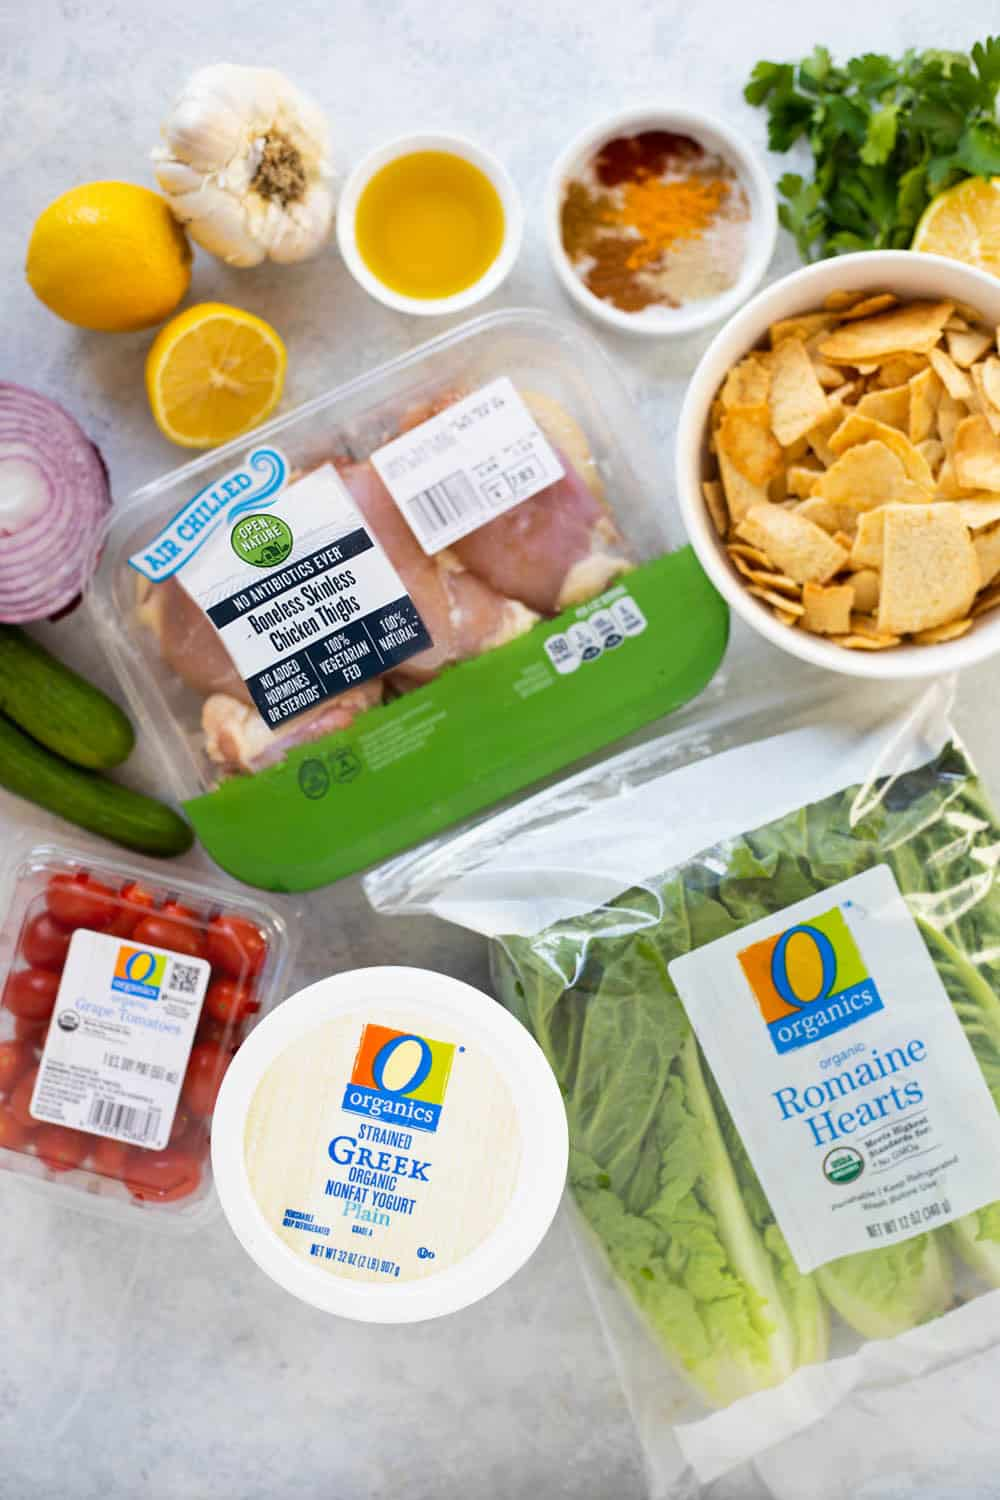 ingredient shot includes chicken, pita chips, vegetables and lettuce.